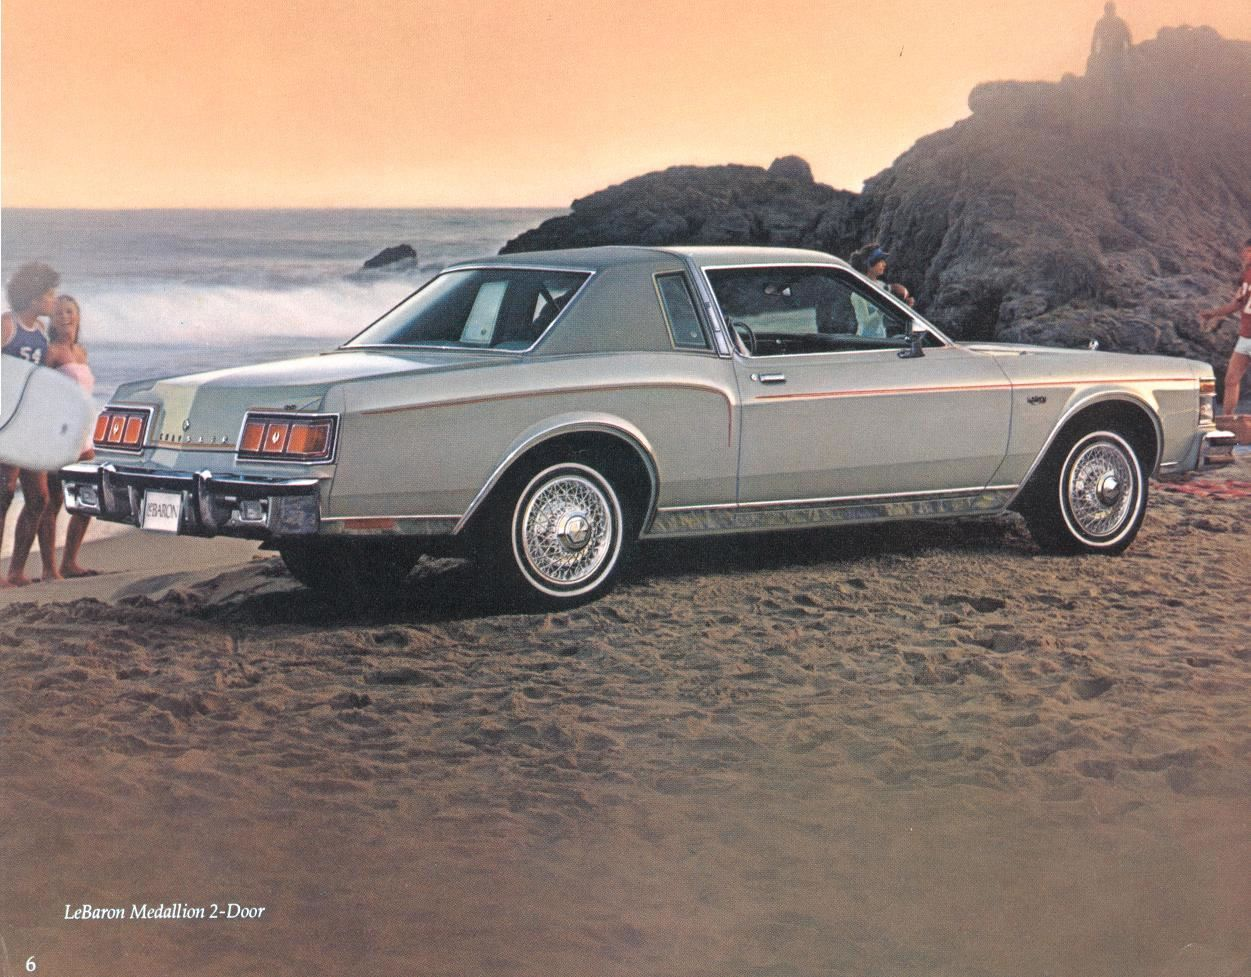 1979 Chrysler Lebaron Medallion 2 Door With Images Chrysler